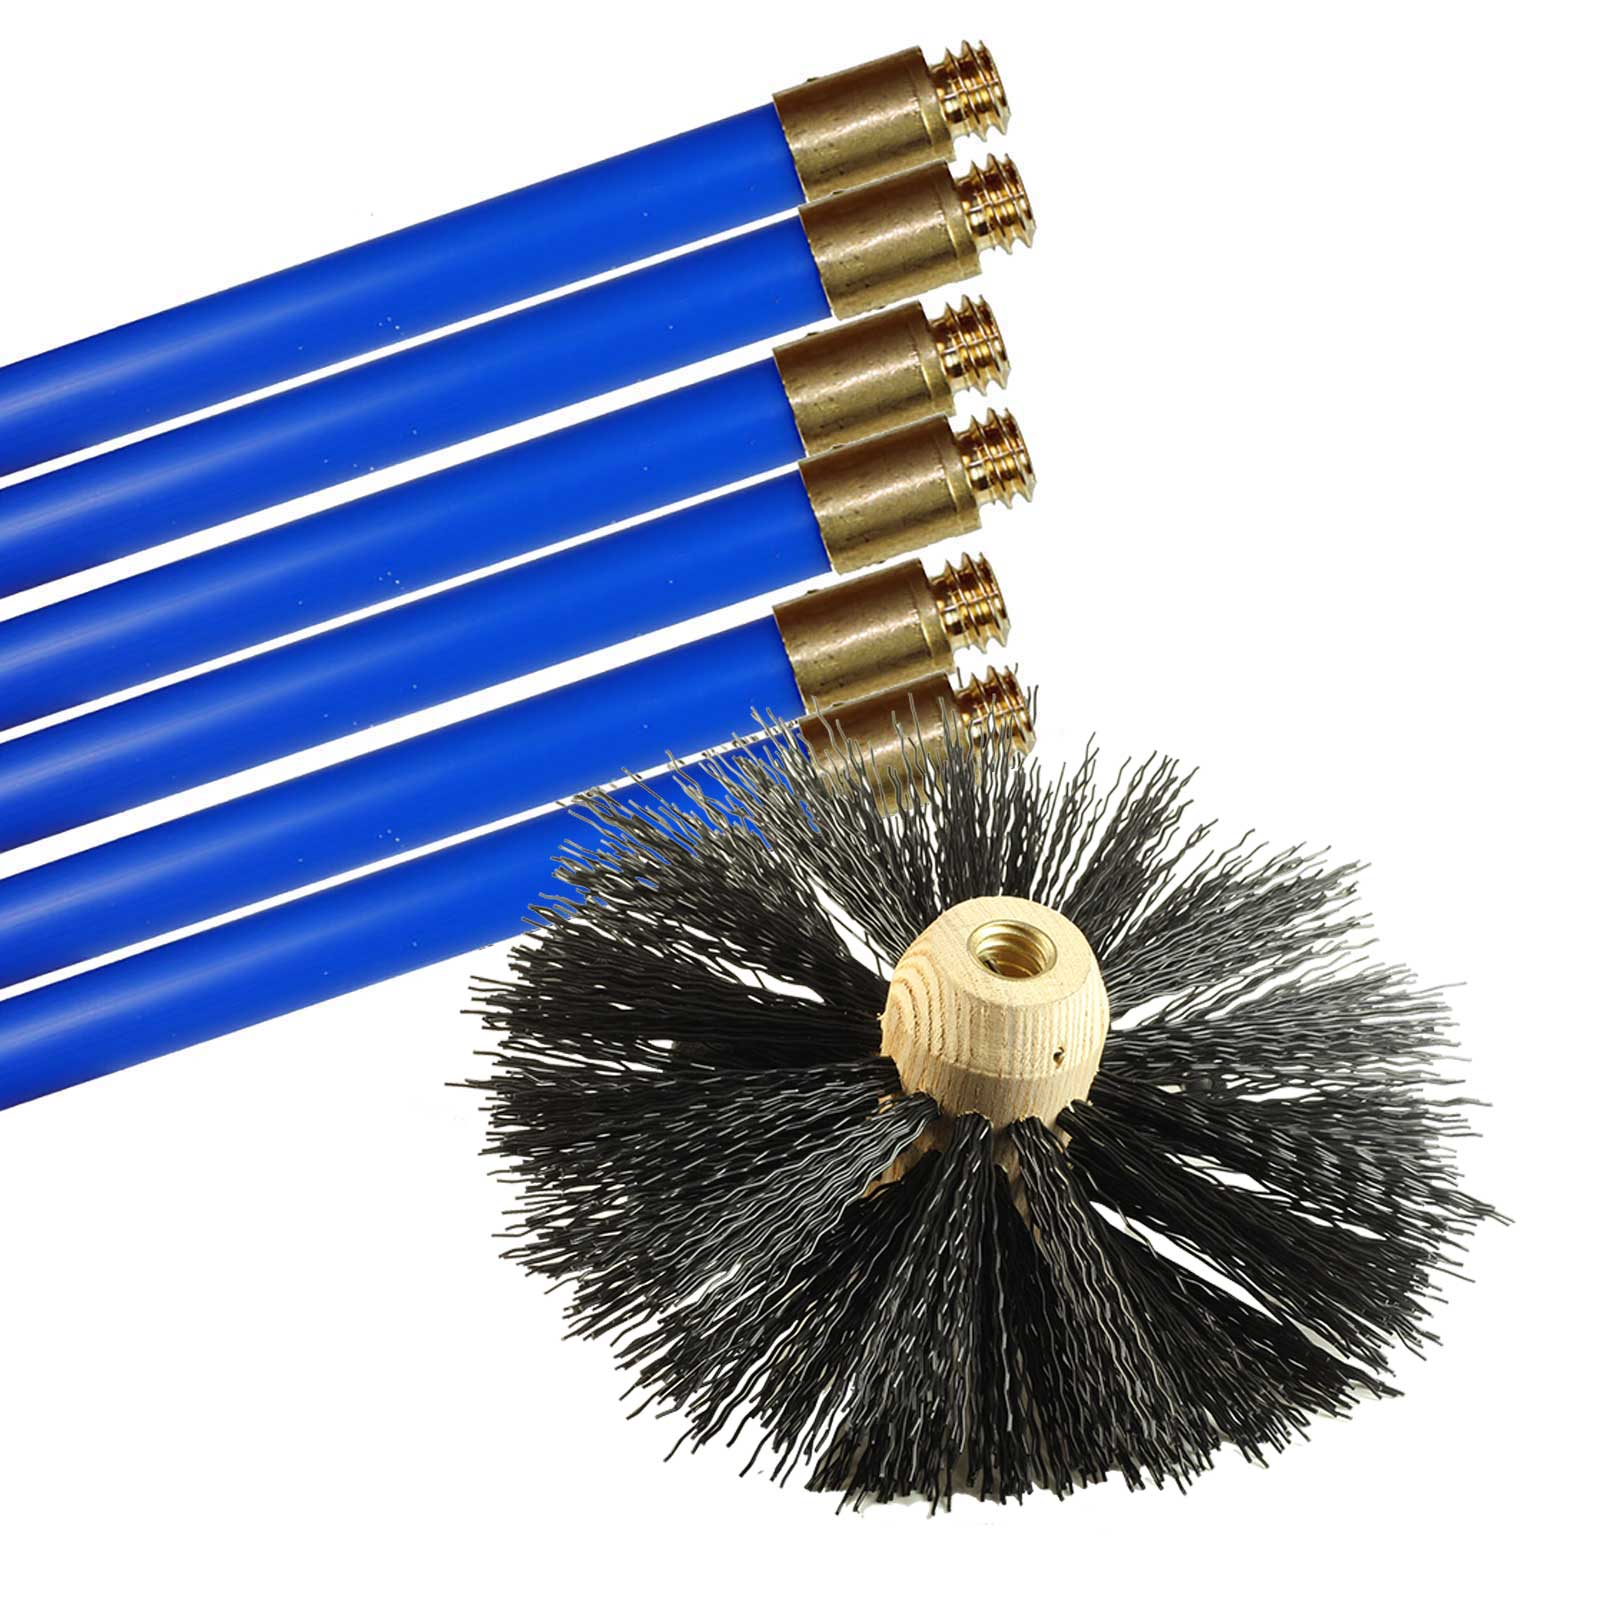 Bailey Chimney Cleaning Set With Brush And 6 Rods Bailey